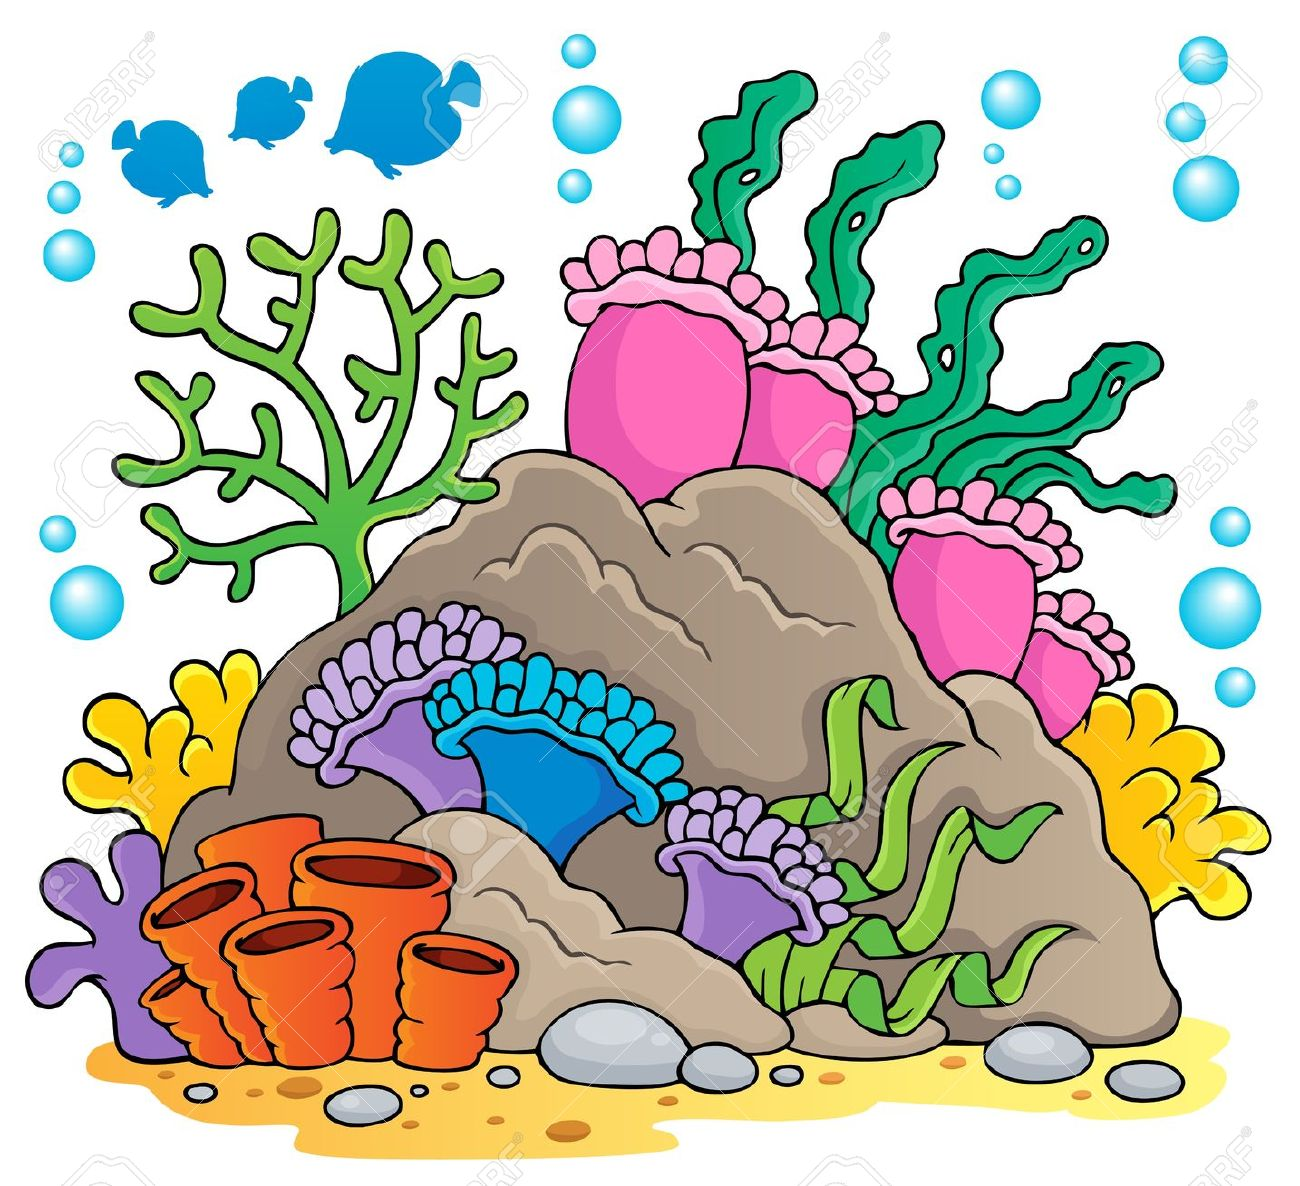 Reef clipart  Coral Reef Clipart